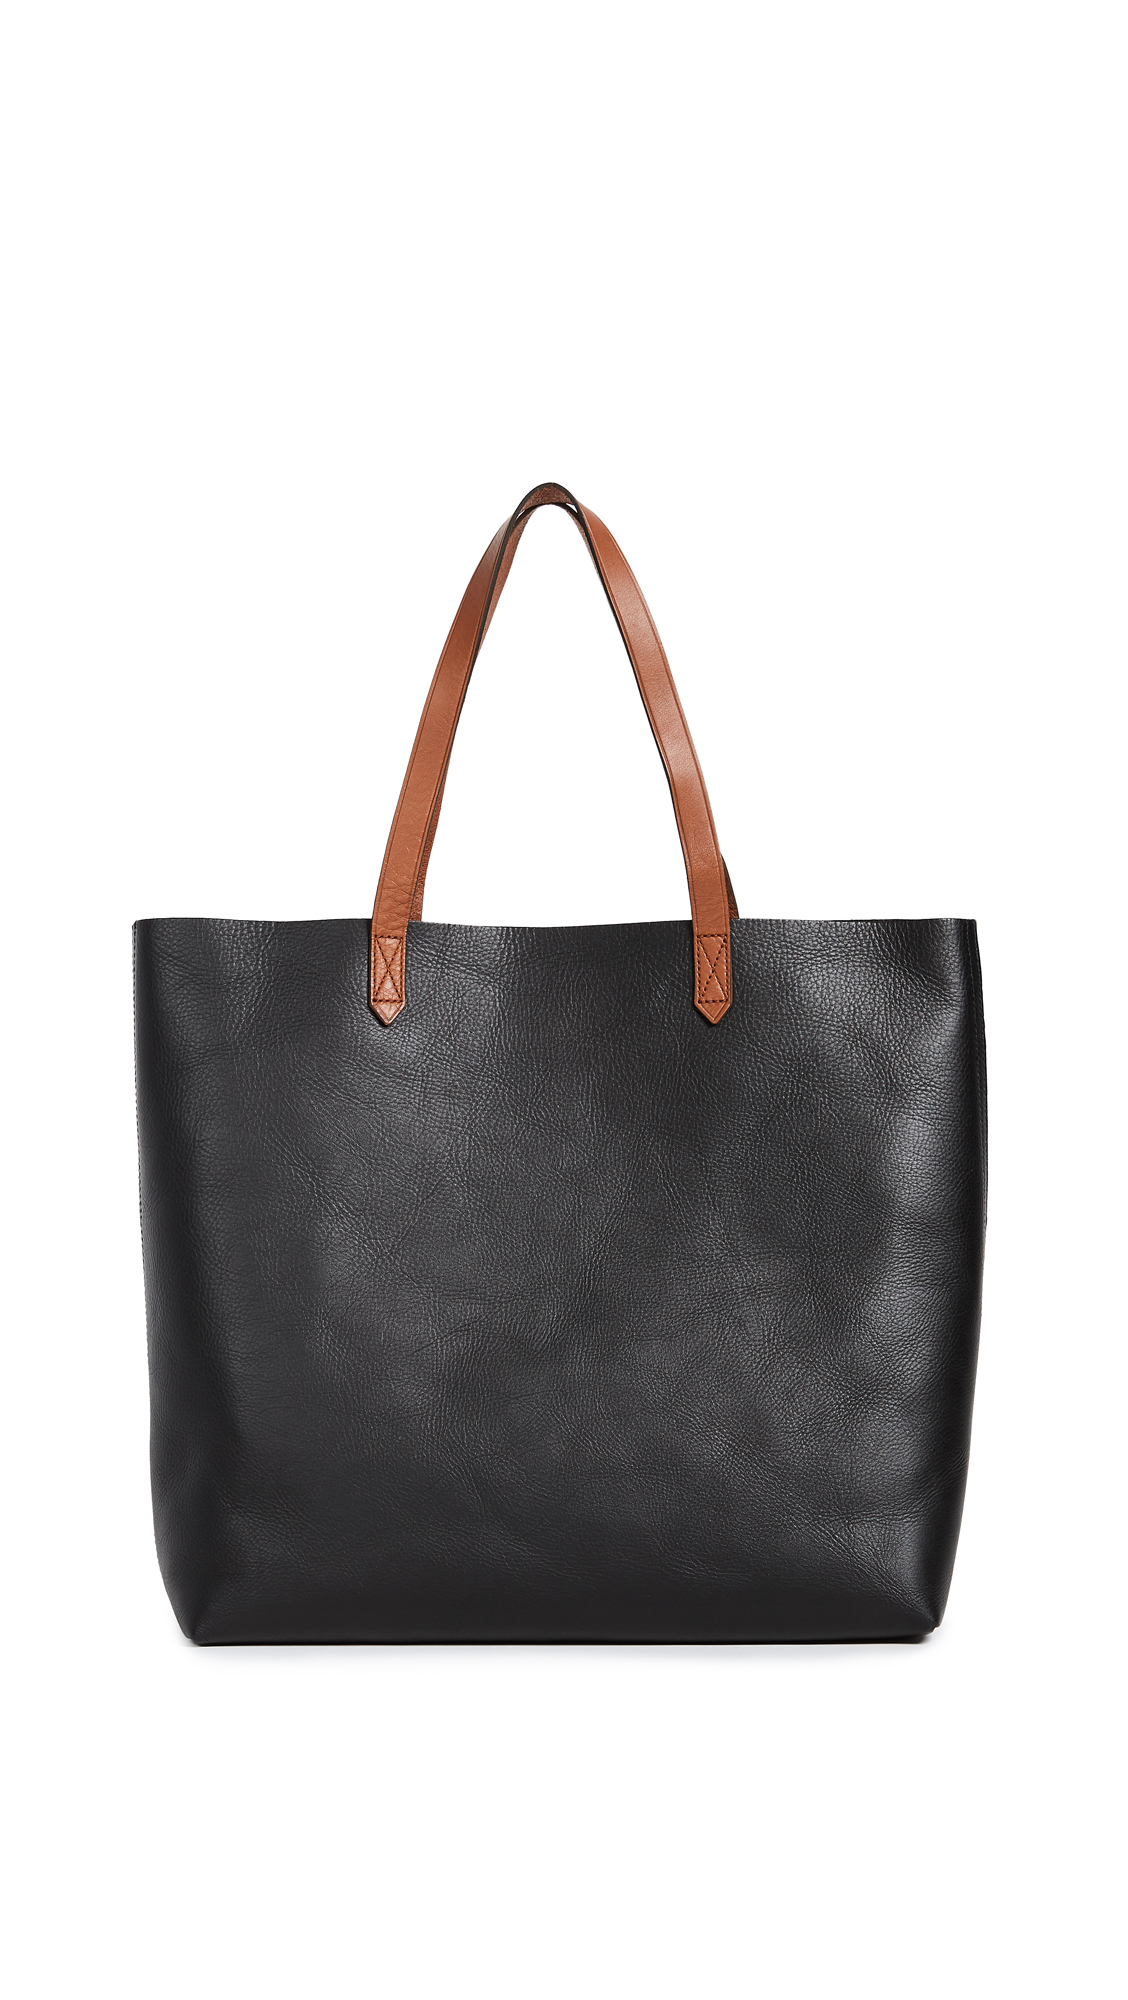 Madewell The Transport Tote - True Black